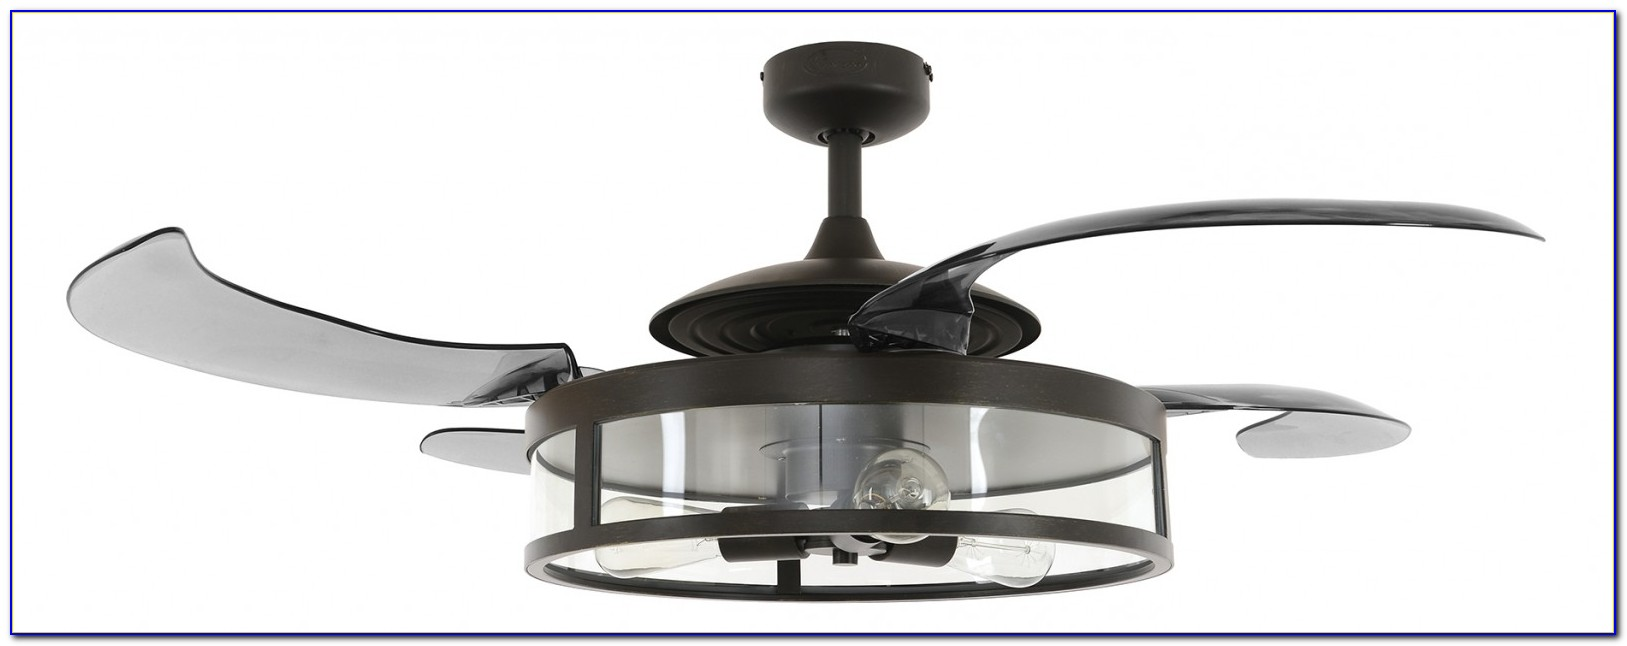 Martec Retractable Blade Ceiling Fan